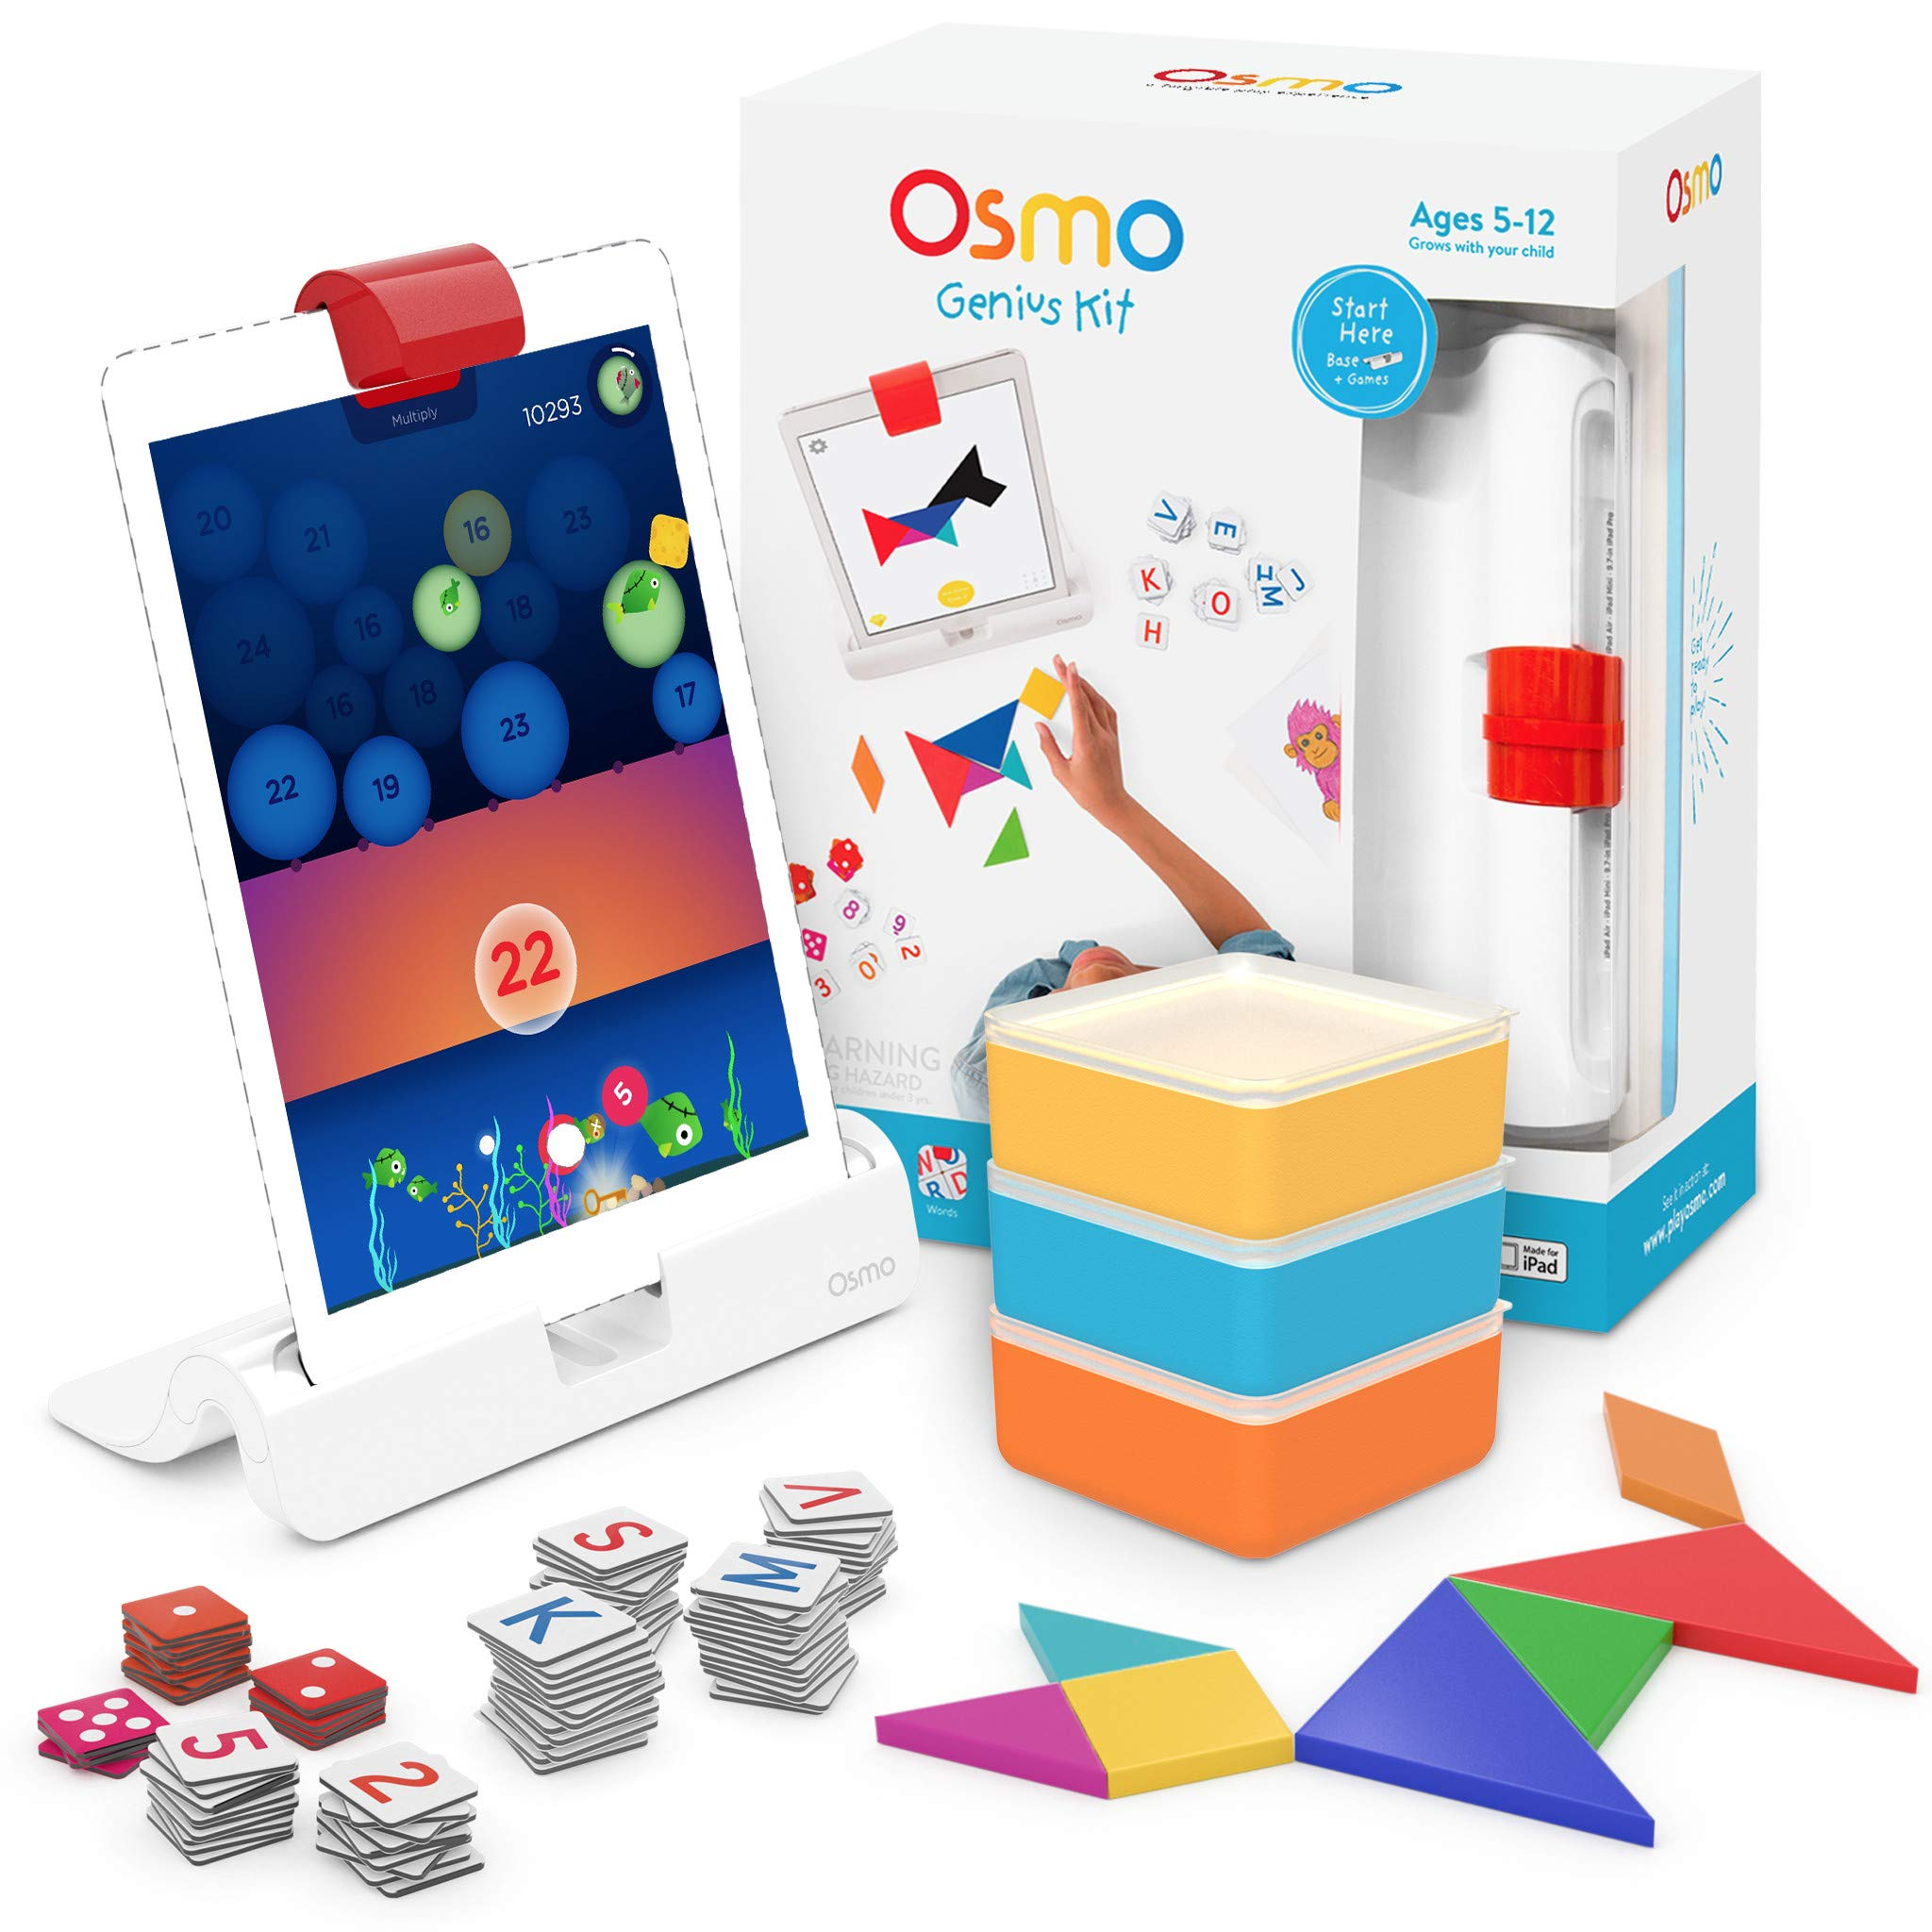 Osmo - Genius Kit for iPad - 5 Hands-On Learning Games - Ages 6-10 - Math, Spelling, Problem Solving & Creativity - STEM - (Osmo iPad Base Included) by Osmo (Image #1)